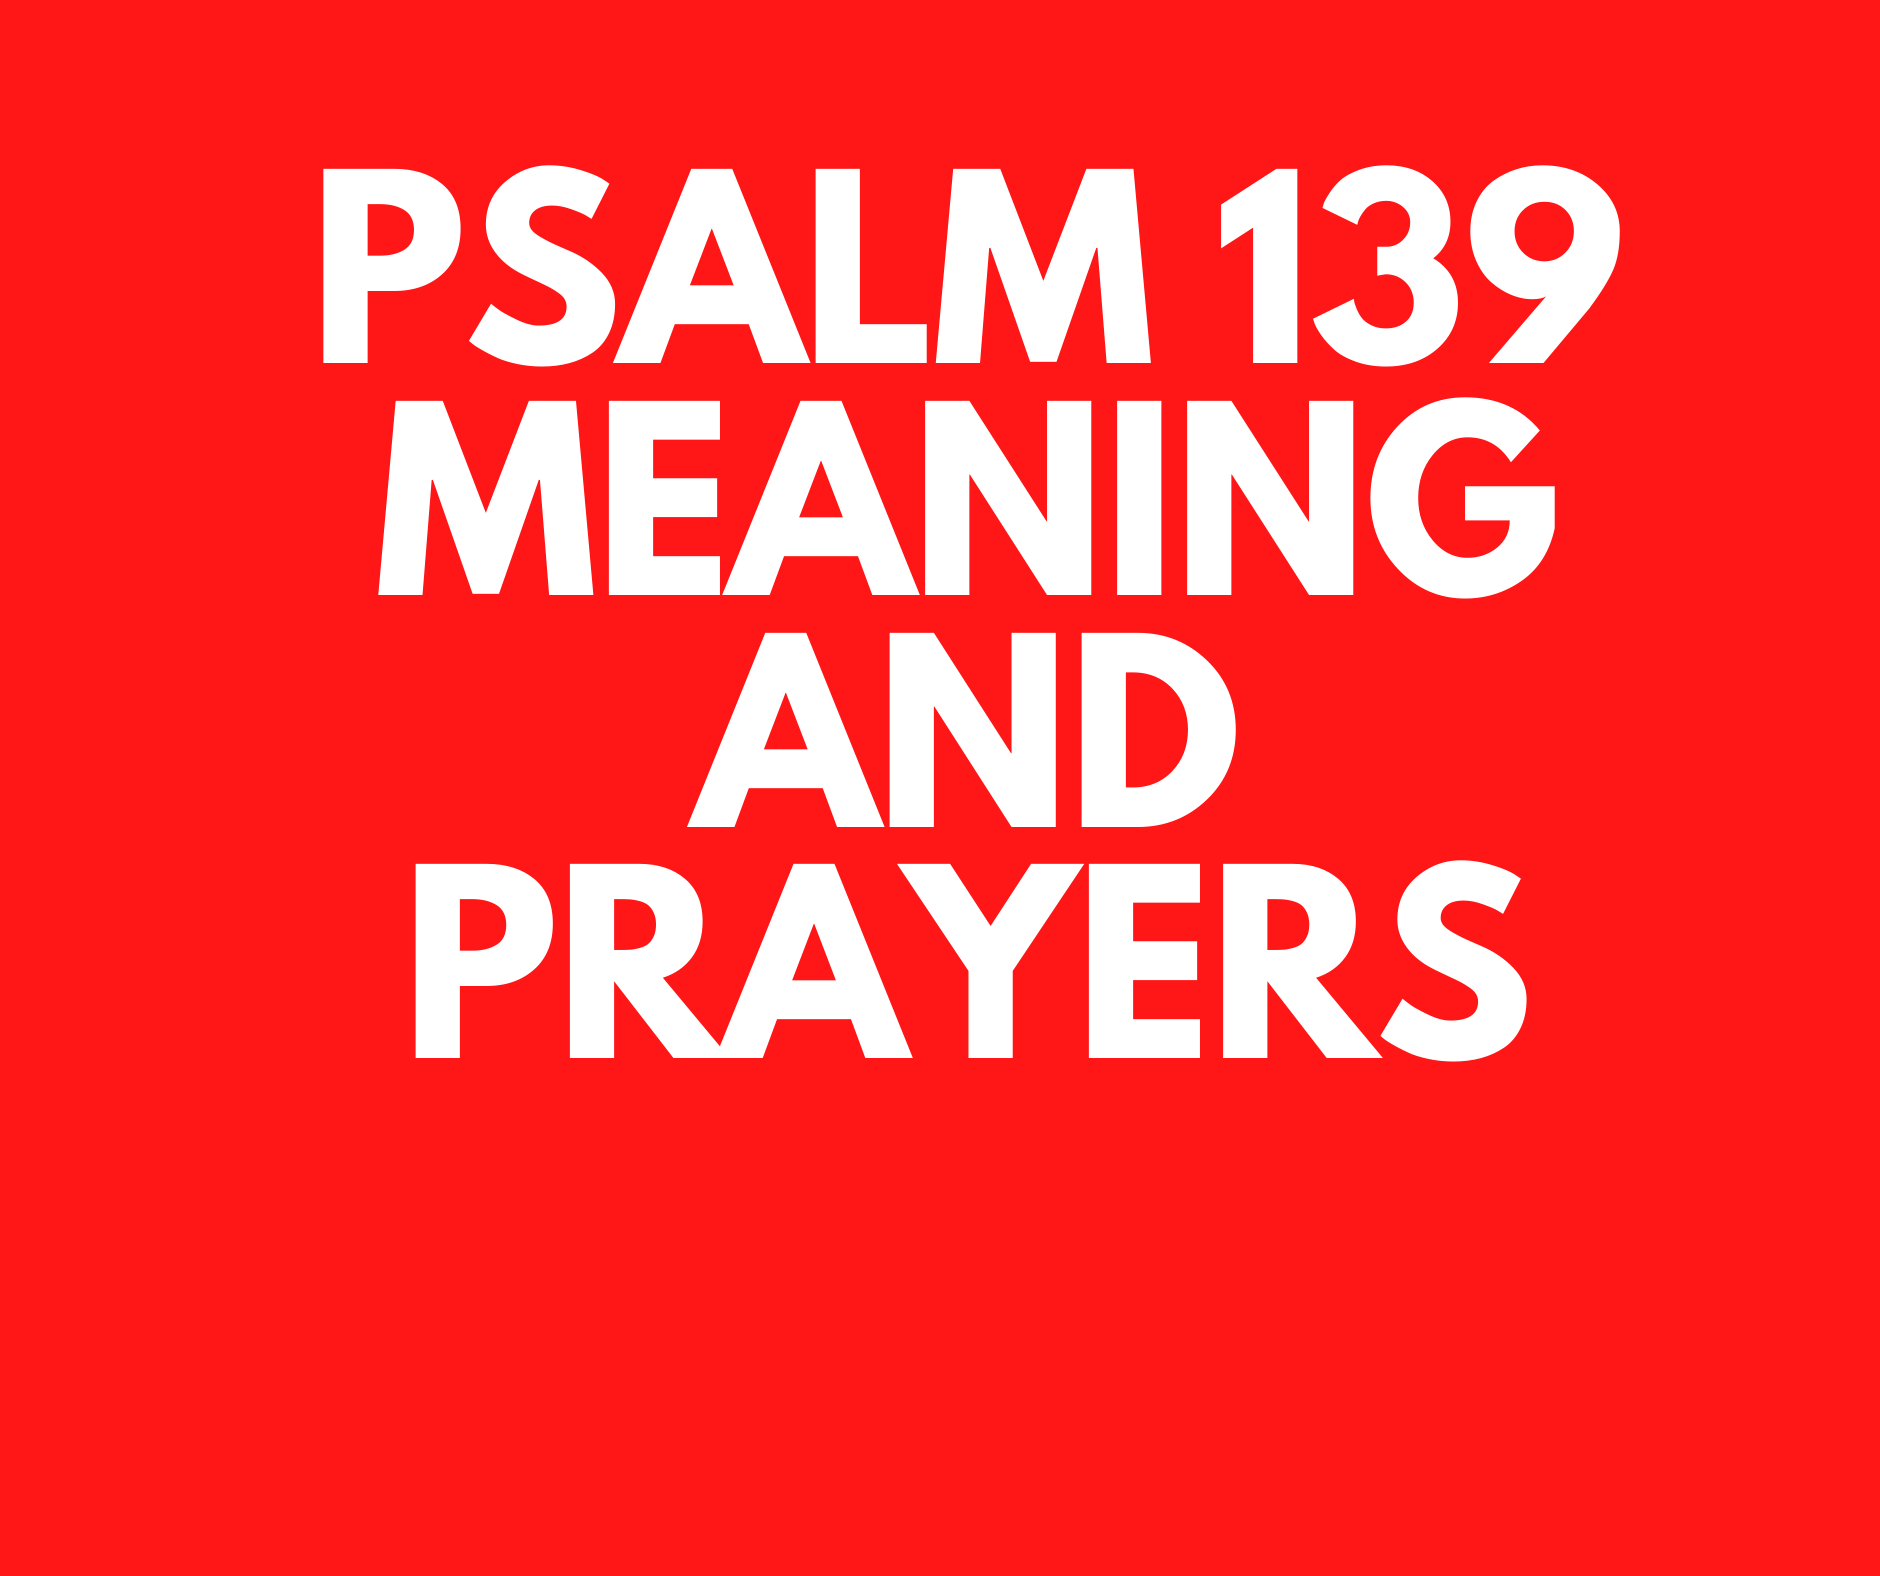 Psalm 139 Meaning Verse By Verse PRAYER POINTS